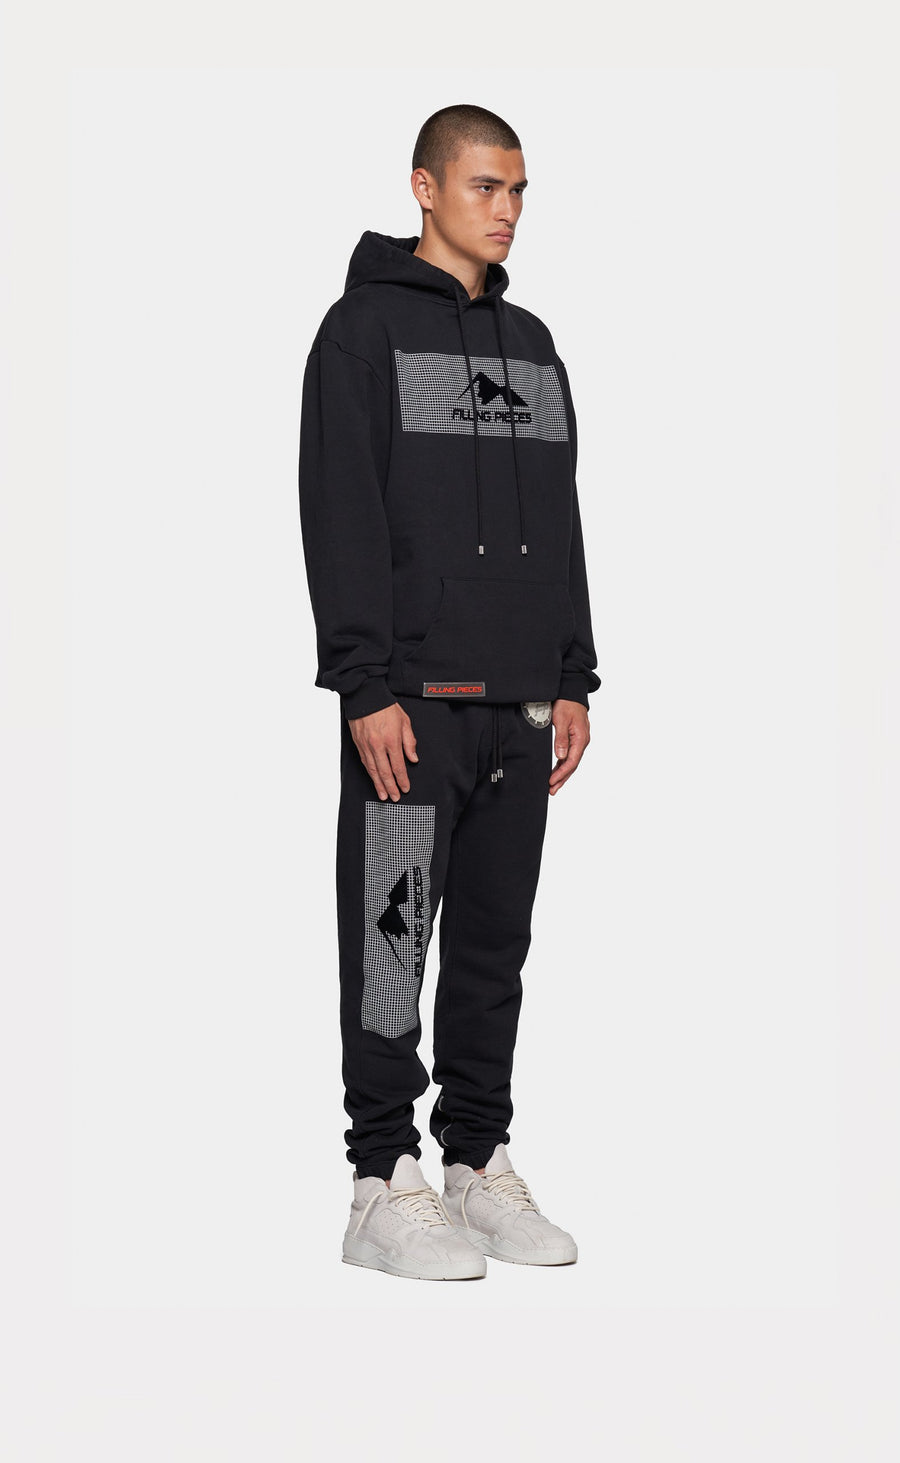 Graphic Hoodie Black - Mountain Grid